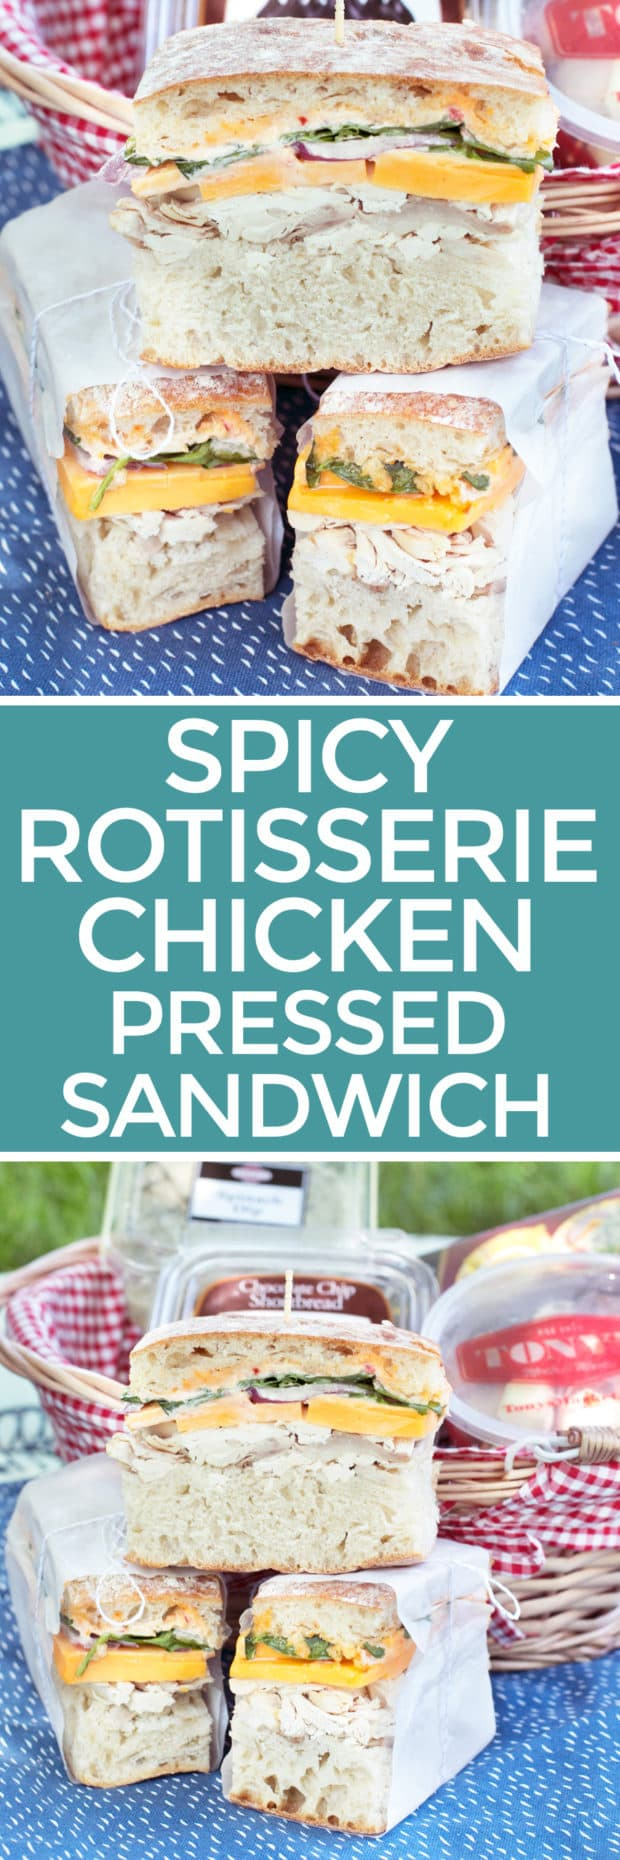 Spicy Rotisserie Chicken Pressed Sandwich - Cake \'n Knife